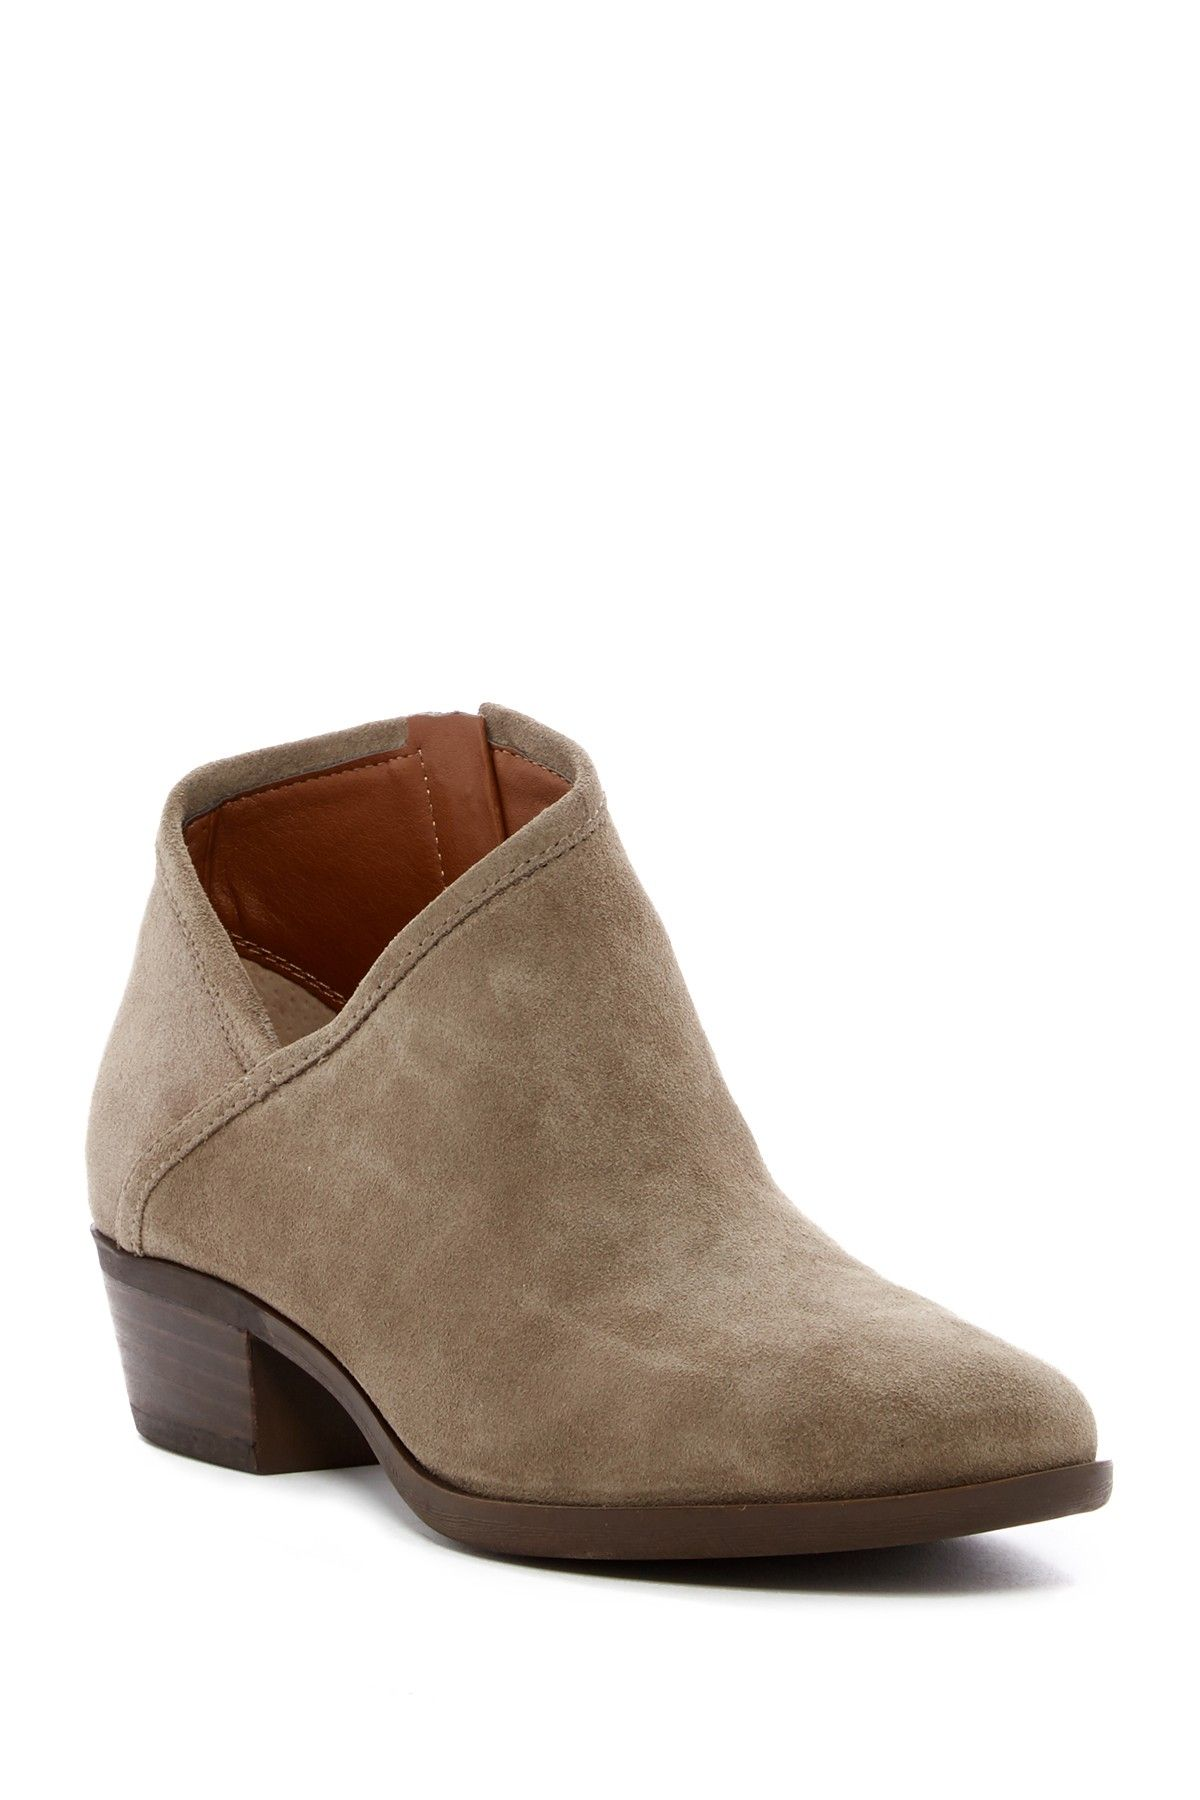 7eab977b07c Brekke Ankle Bootie - Wide Width Available by Lucky Brand on  nordstrom rack